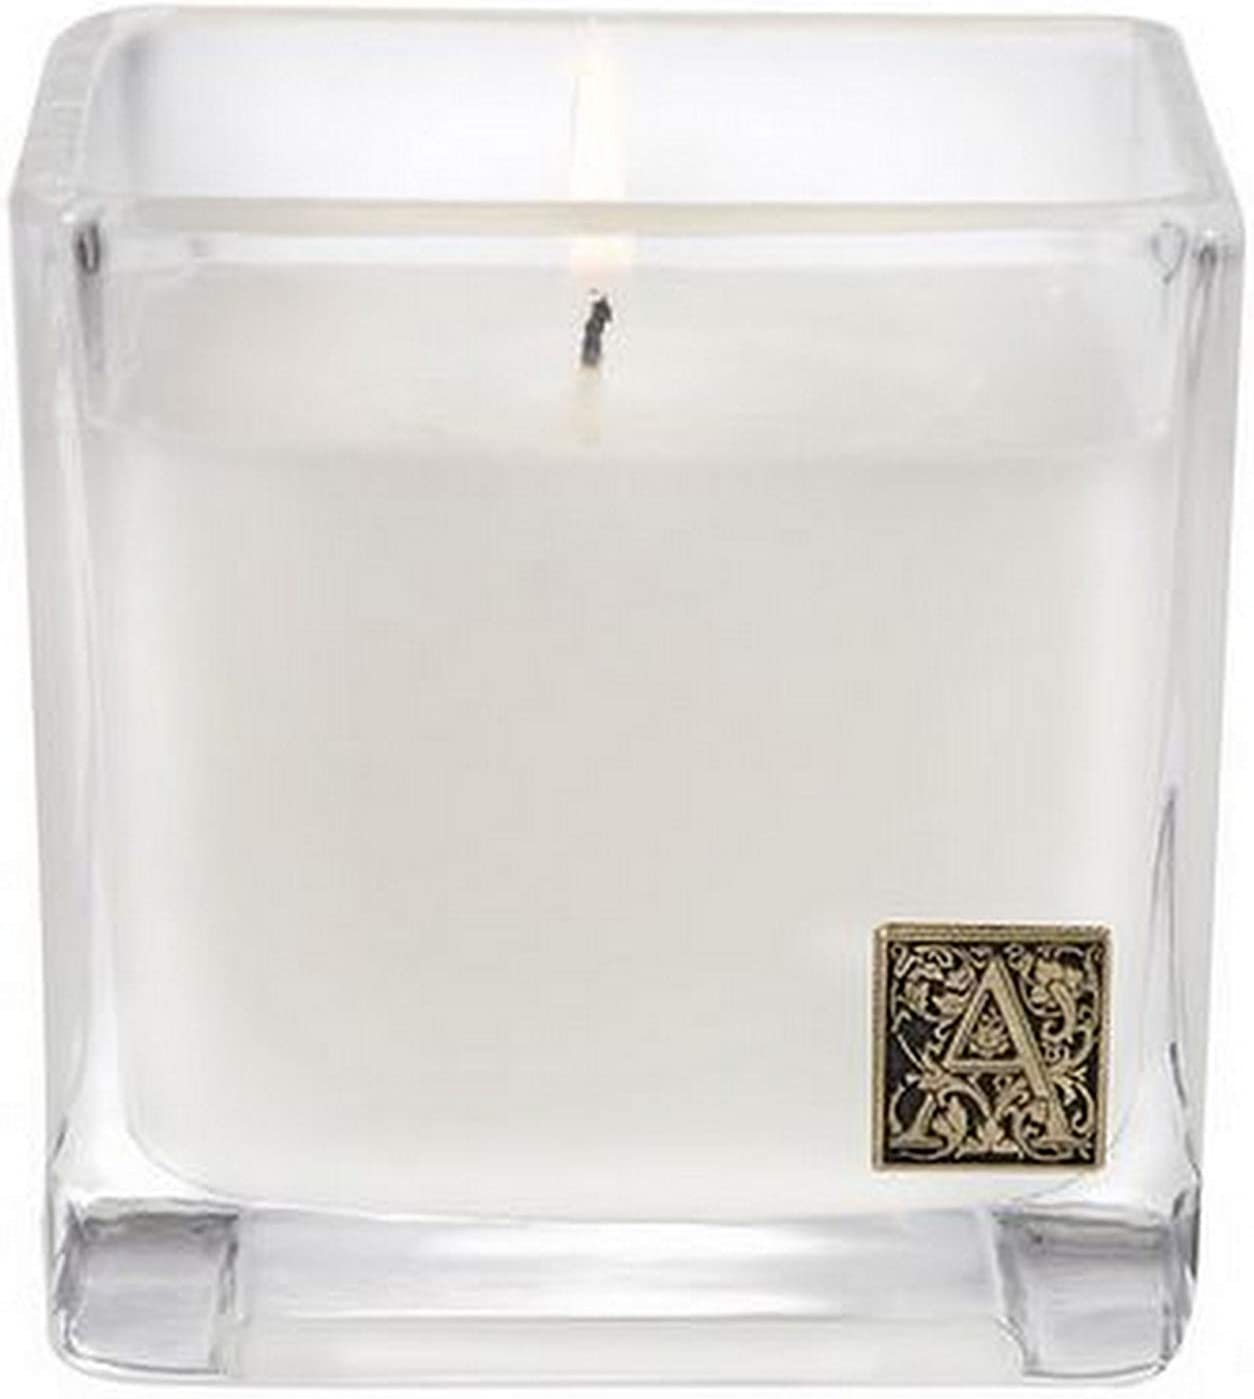 Aromatique The Smell of Spring Glass Cube 12 oz Scented Jar Candle with Metal Medallion for Home Décor and Gift